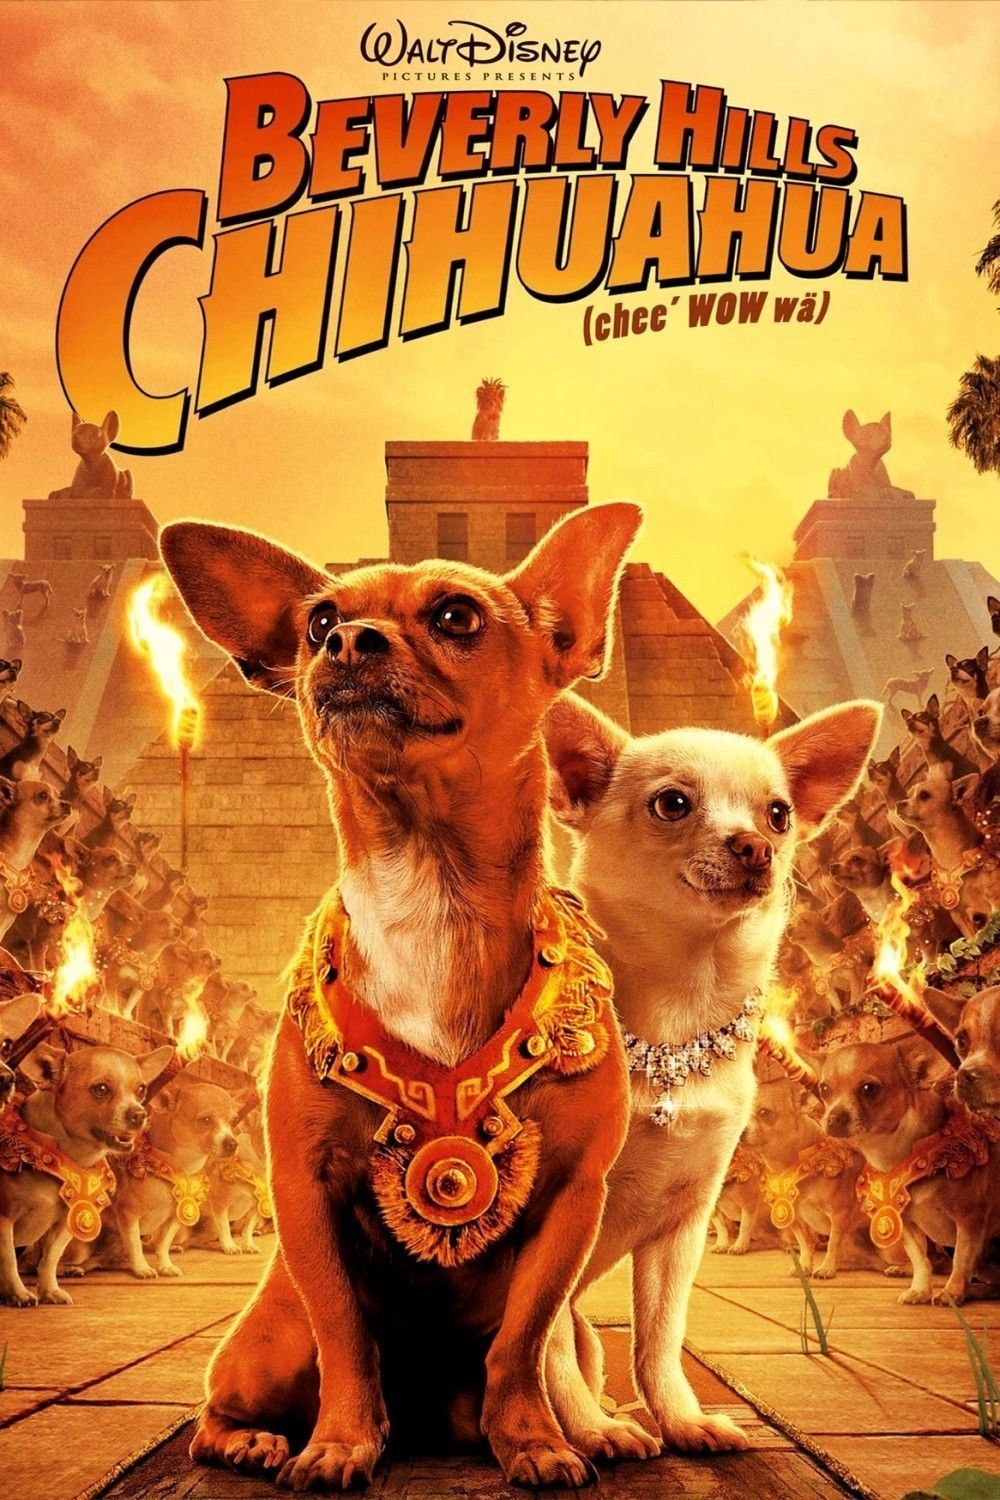 click image to watch Beverly Hills Chihuahua (2008) | wOw | Pinterest